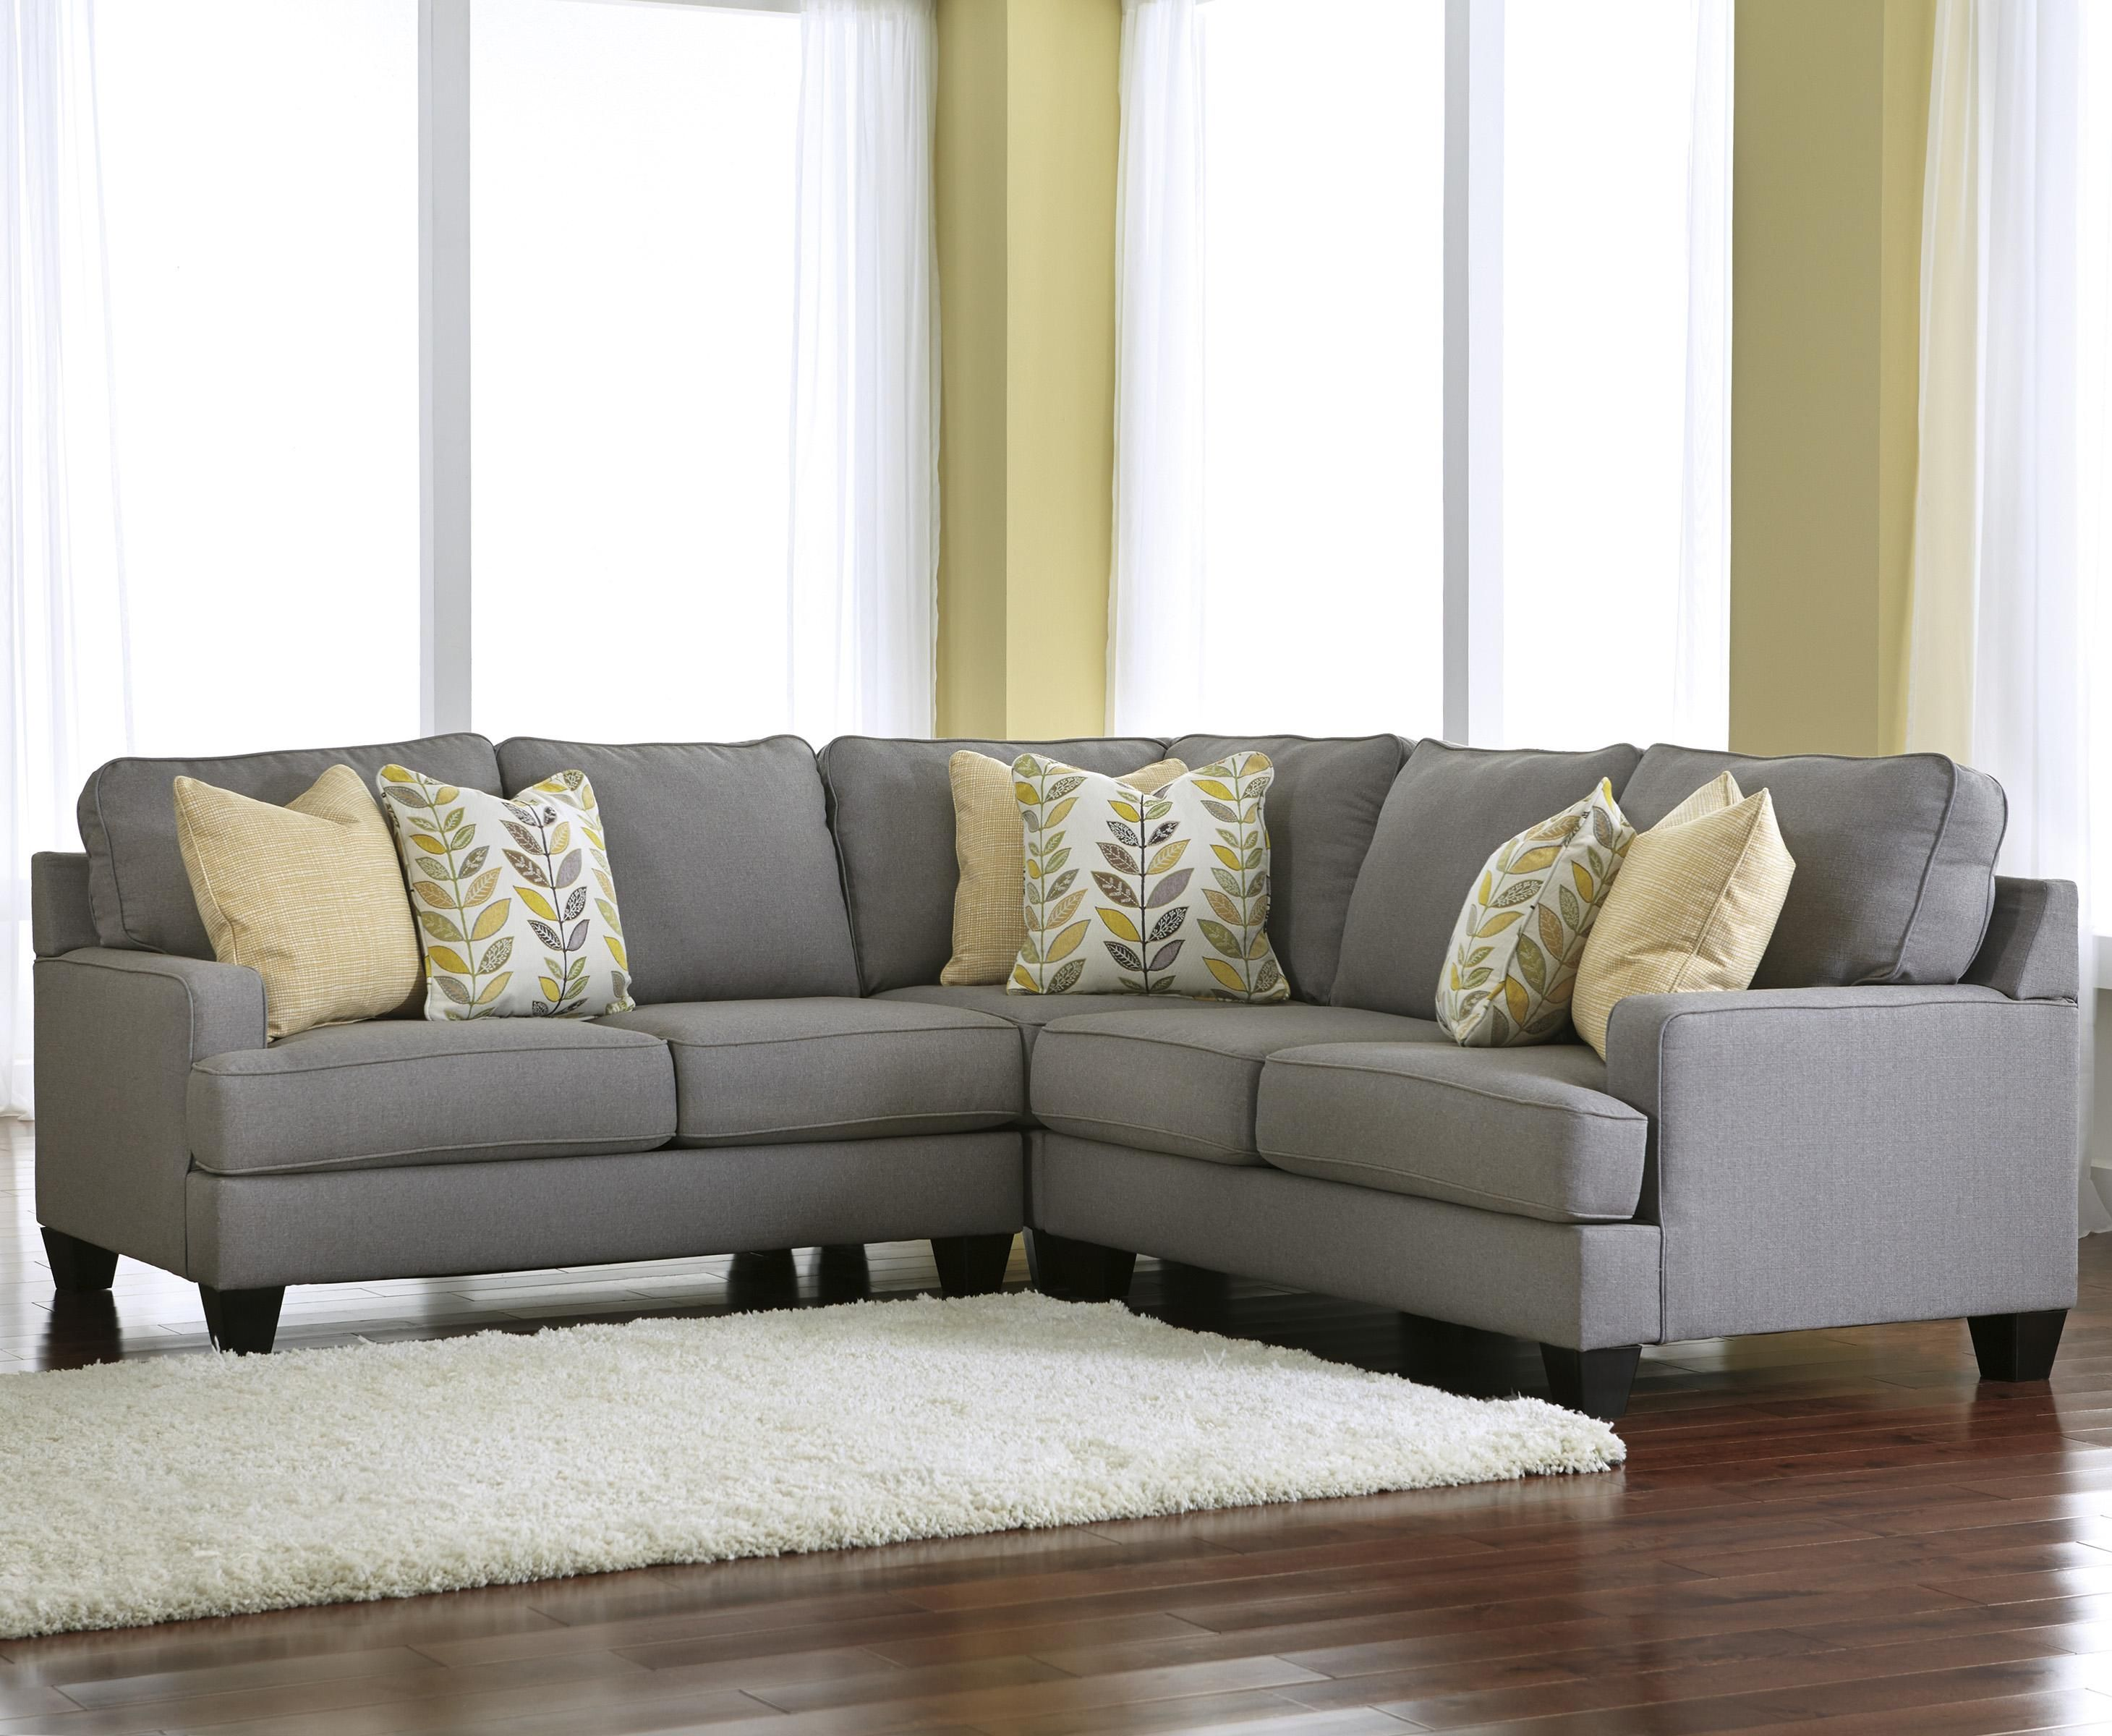 Chamberly Alloy 3 Piece Corner Sectional Sofa By Signature Design Ashley